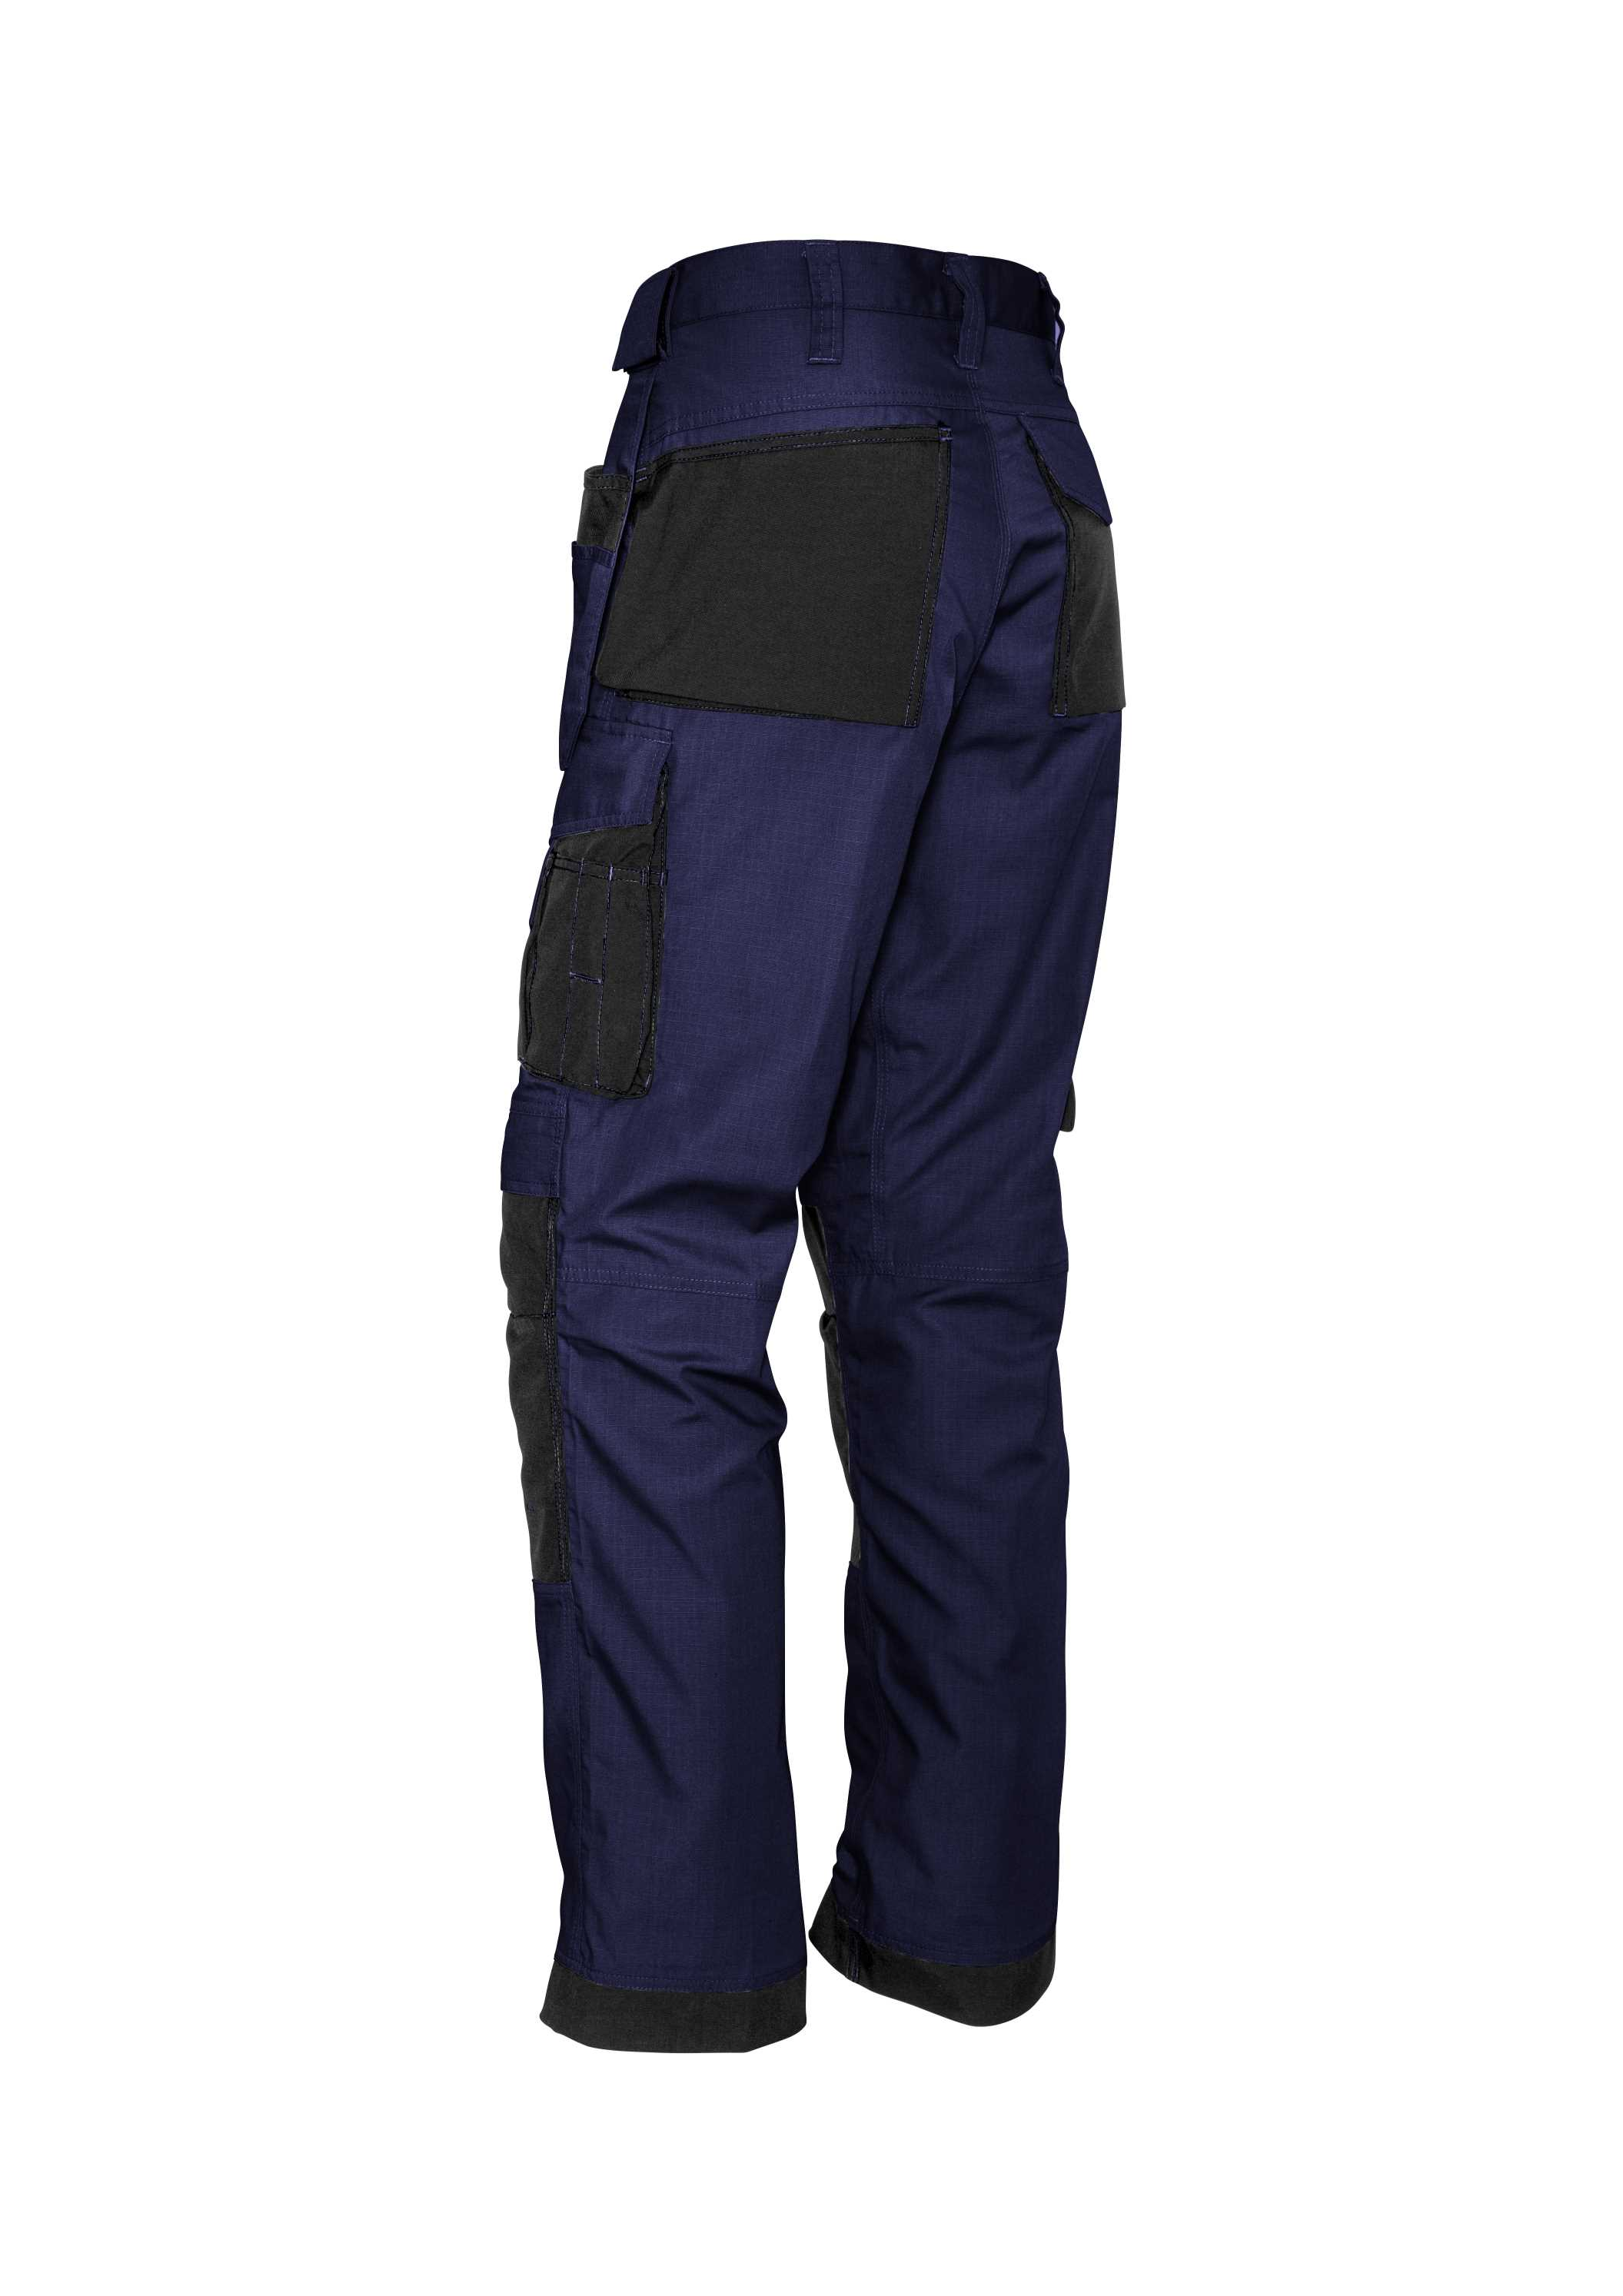 ZP509_Navy_BackSide